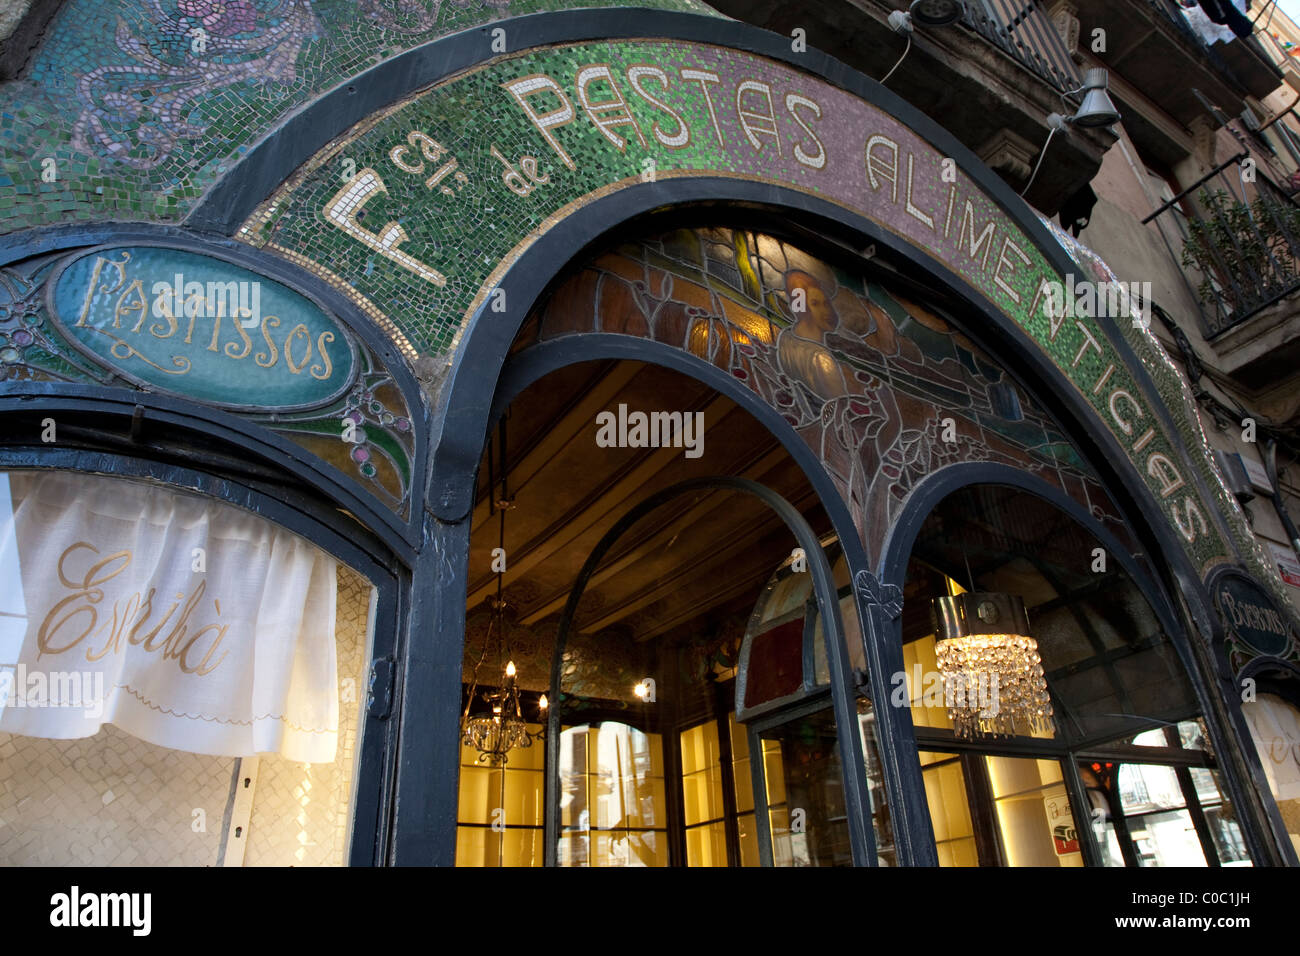 Facade of Escriba Bakery and Cafe on the Rambla in Barcelona, Catalonia, Spain - Stock Image